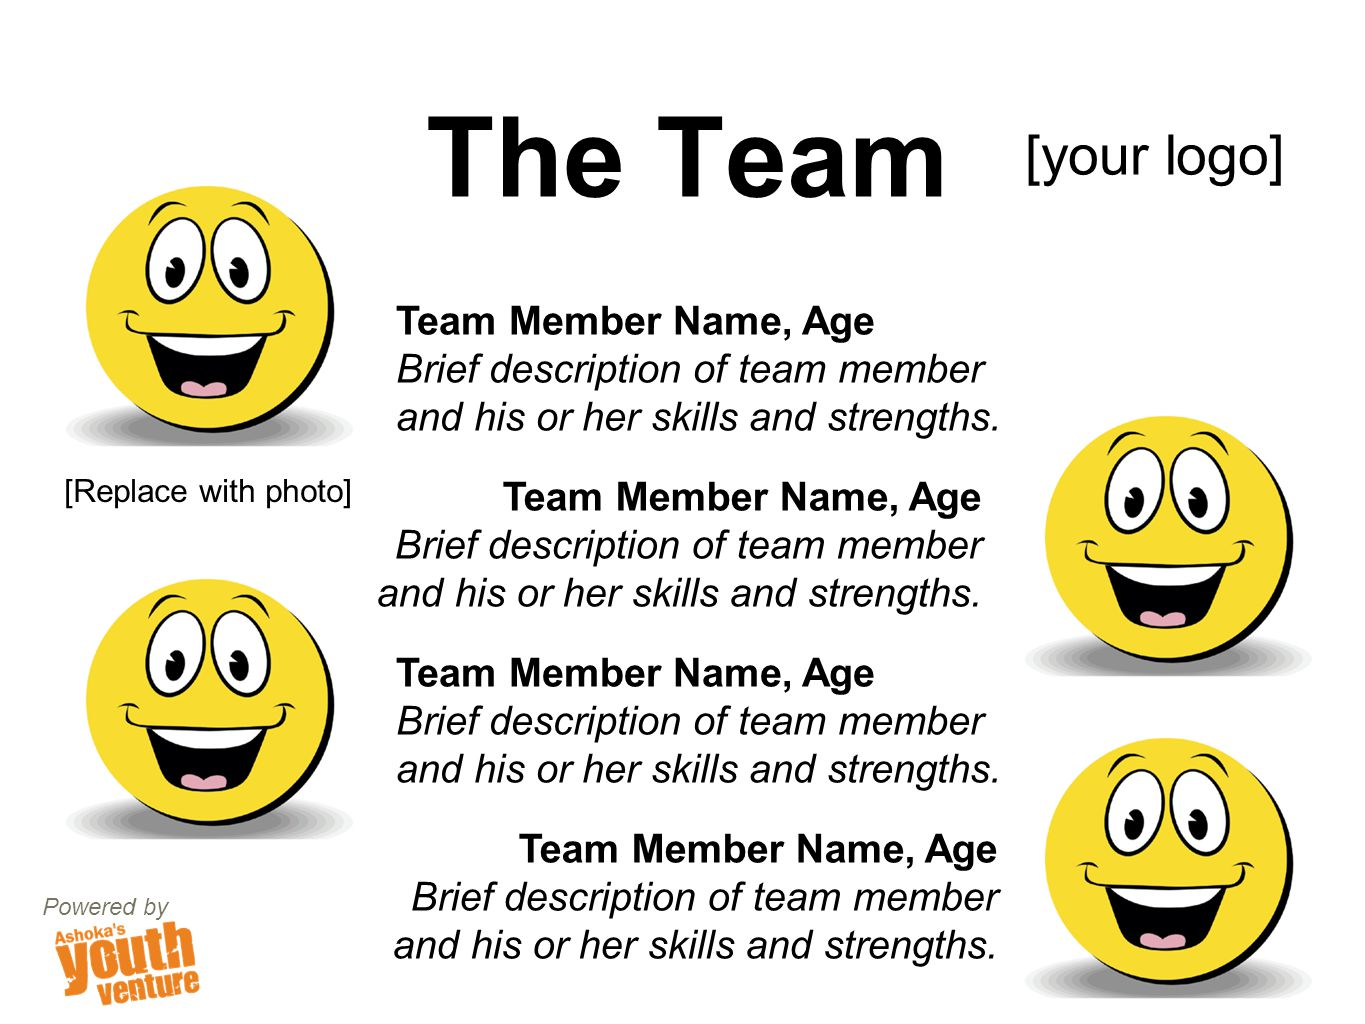 Team Member Name, Age Brief description of team member and his or her skills and strengths.